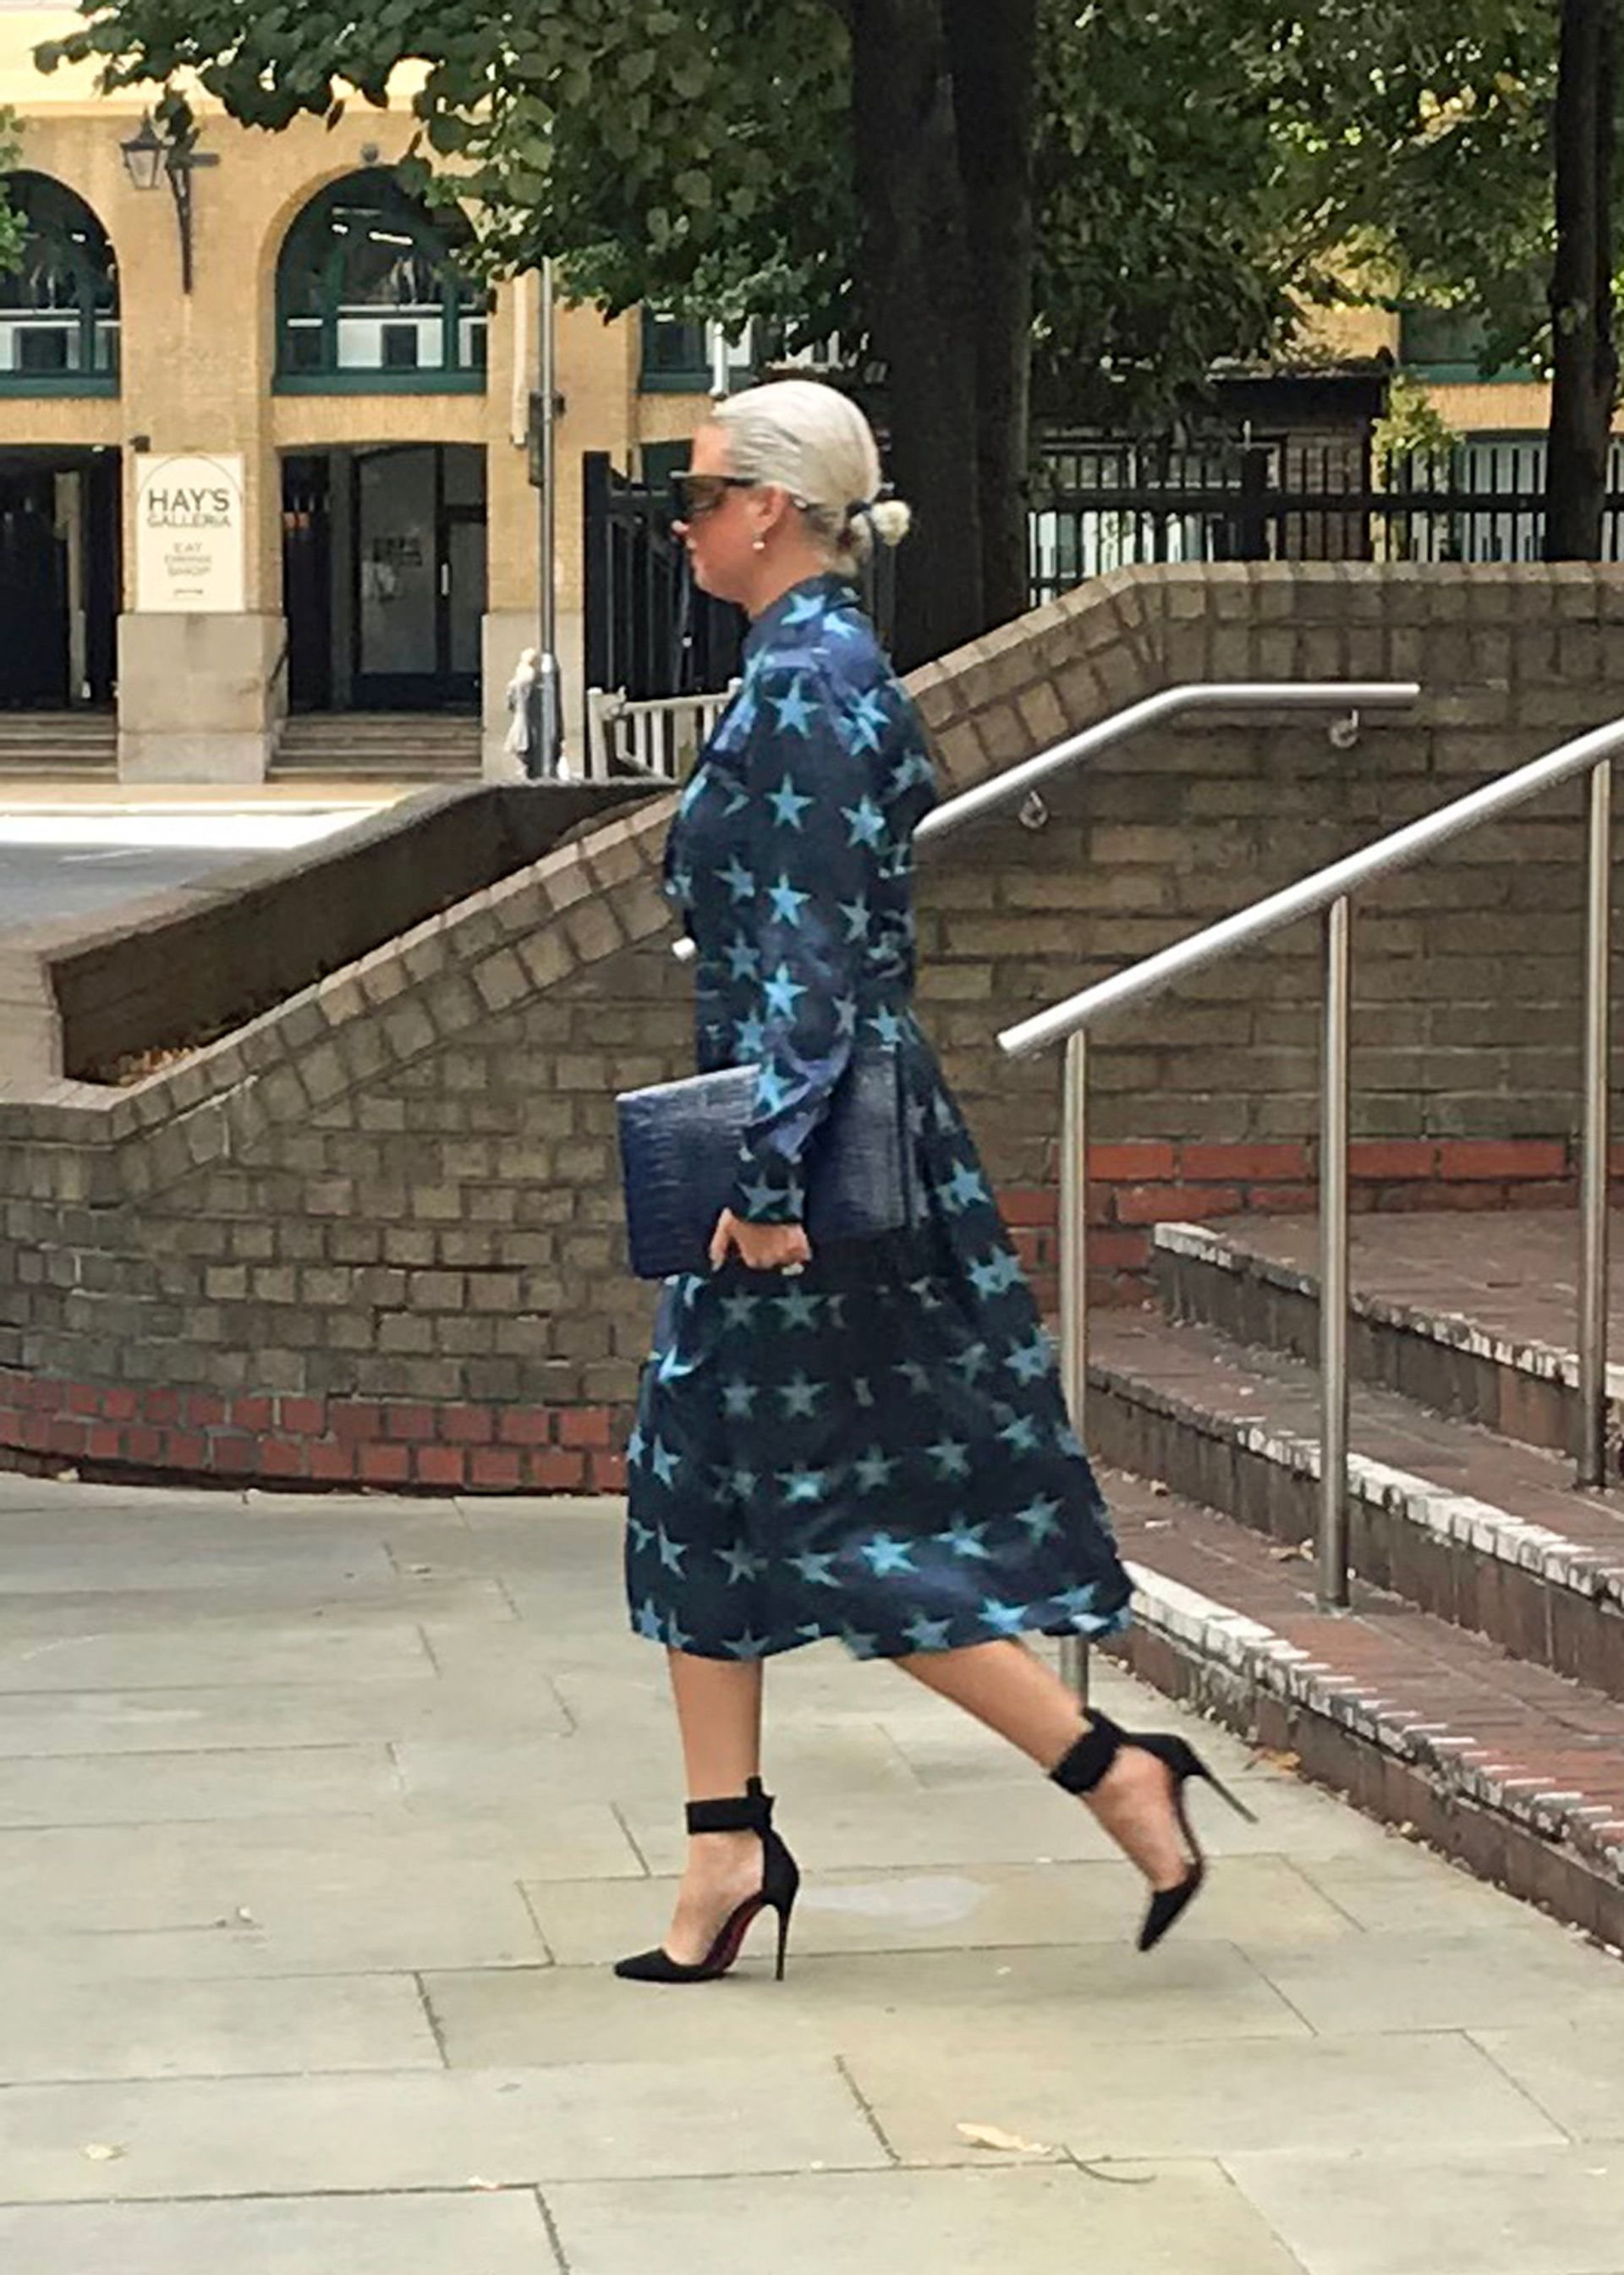 Angela Gulbenkian leaving a London court in September after denying theft charges in the sale of a Kusama pumpkin. The German dealer now faces similar charges in a Munich court over a Warhol print sale to a London dealer. Central News